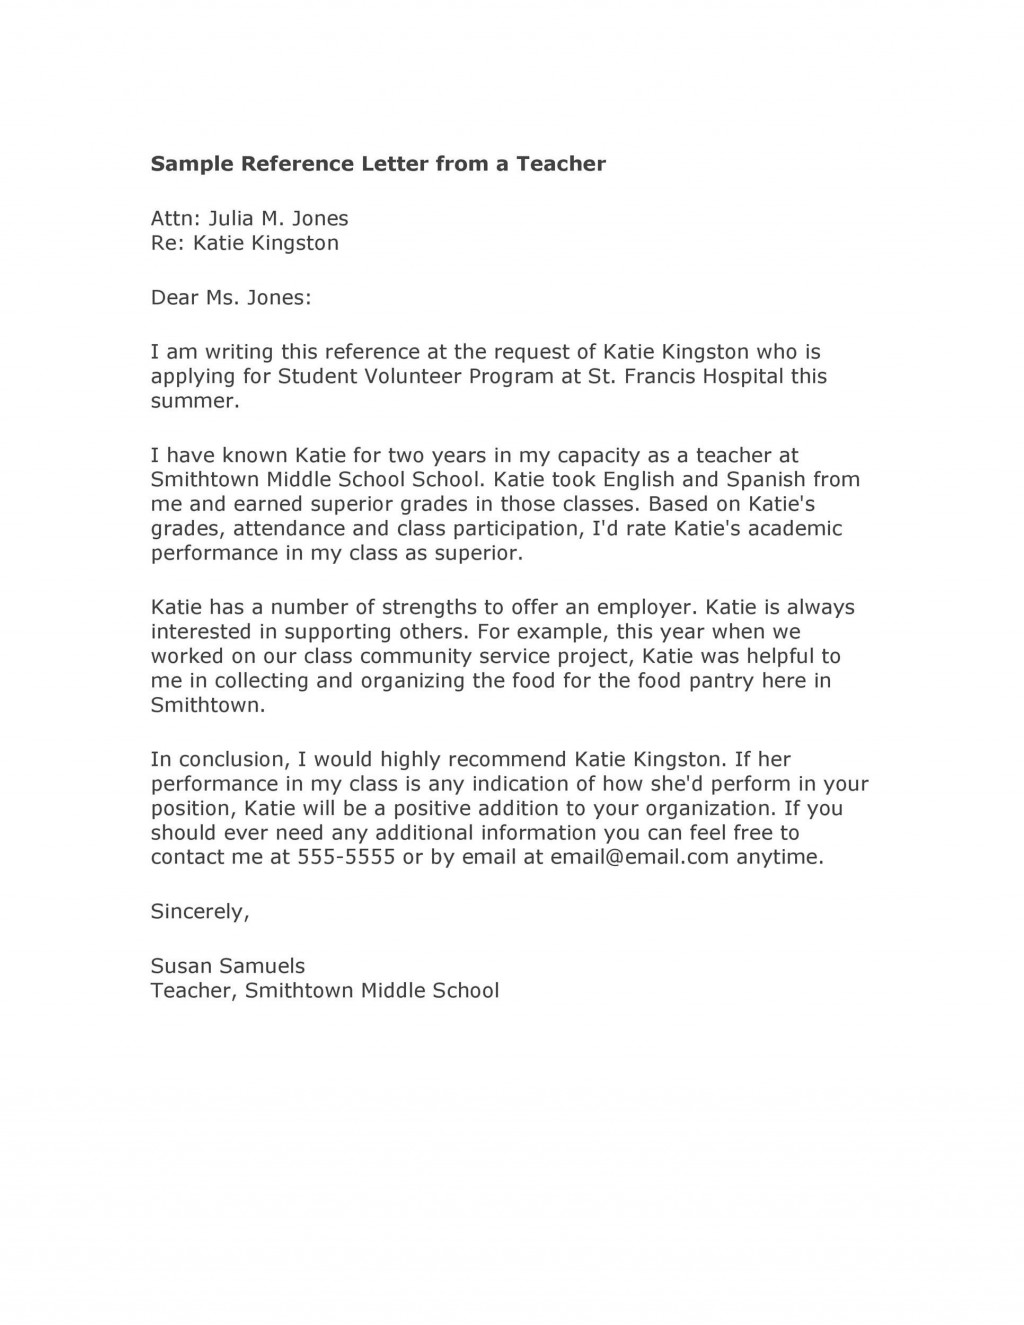 006 Breathtaking College Letter Of Recommendation Template Image  Writing Scholarship From EmployerLarge